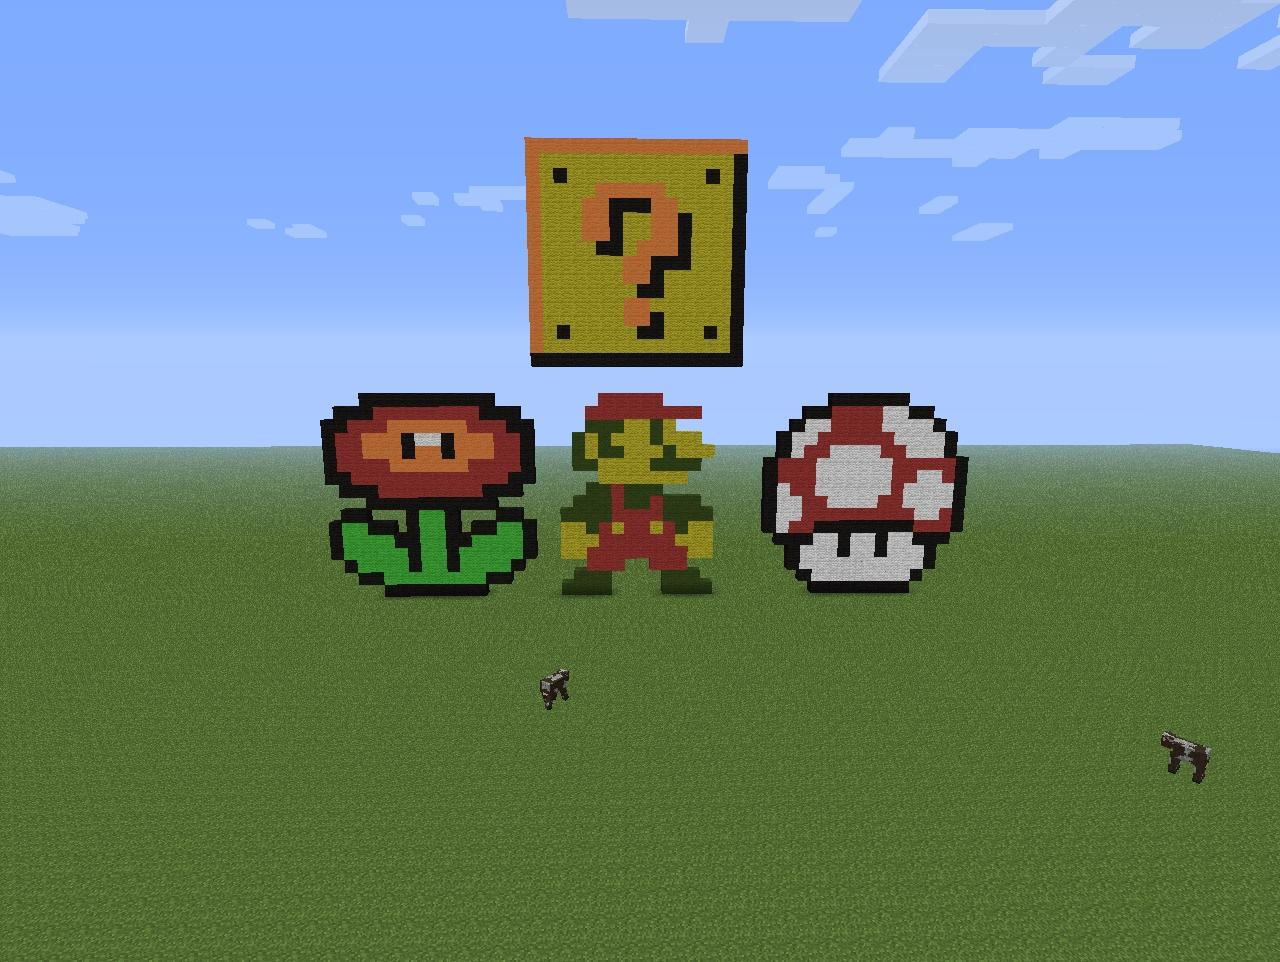 Amazing SUPER MARIO PIXEL ART!